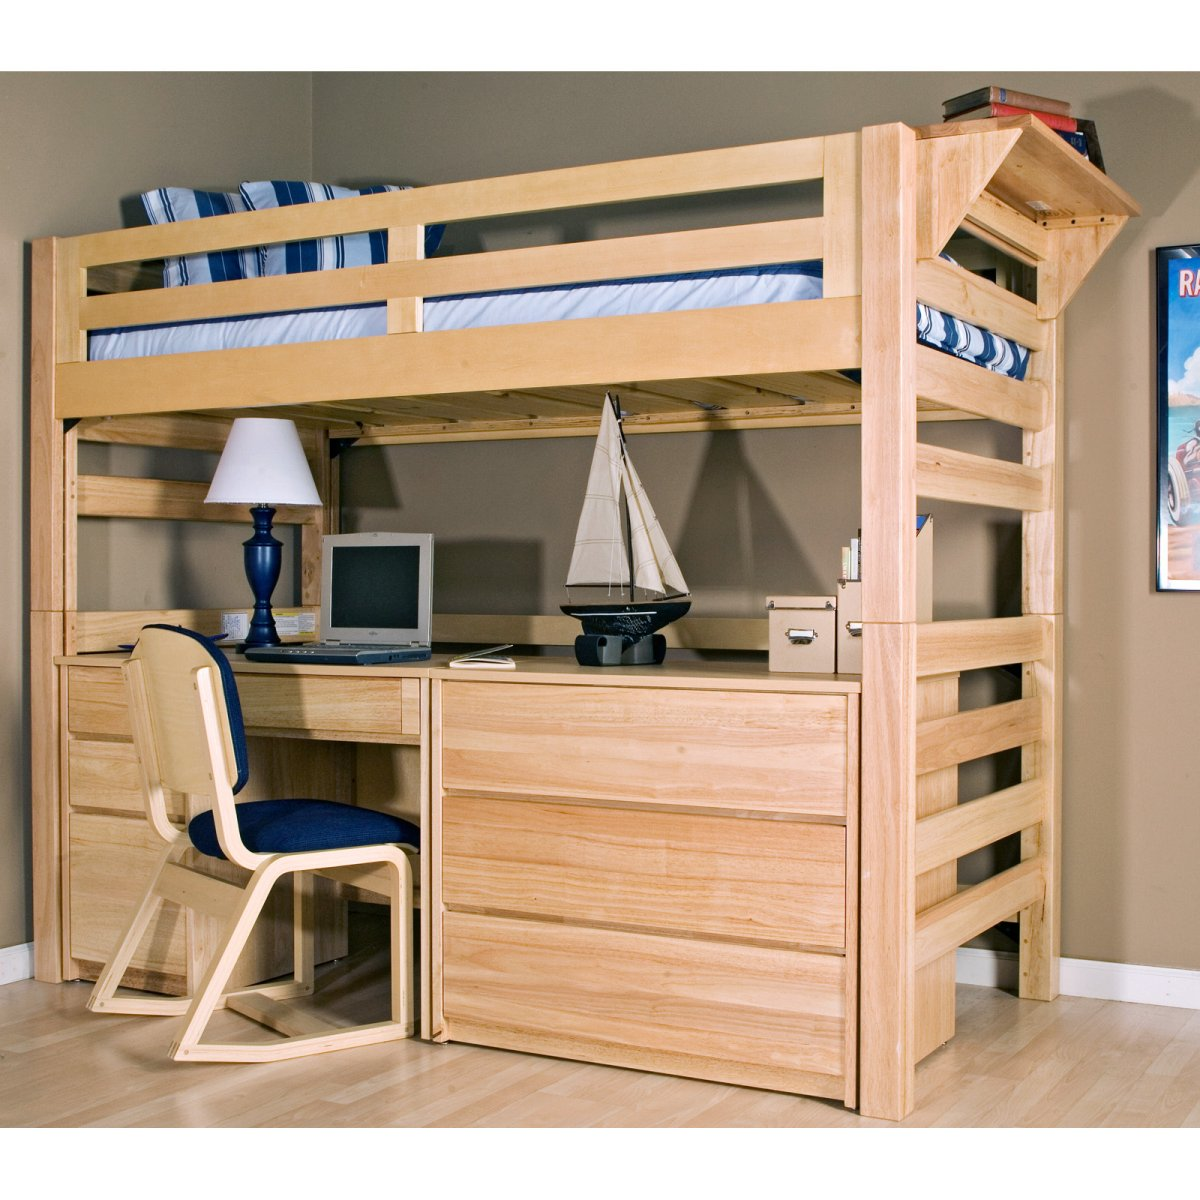 and full loft furniture dresser desk with image bed size babytimeexpo of organizer